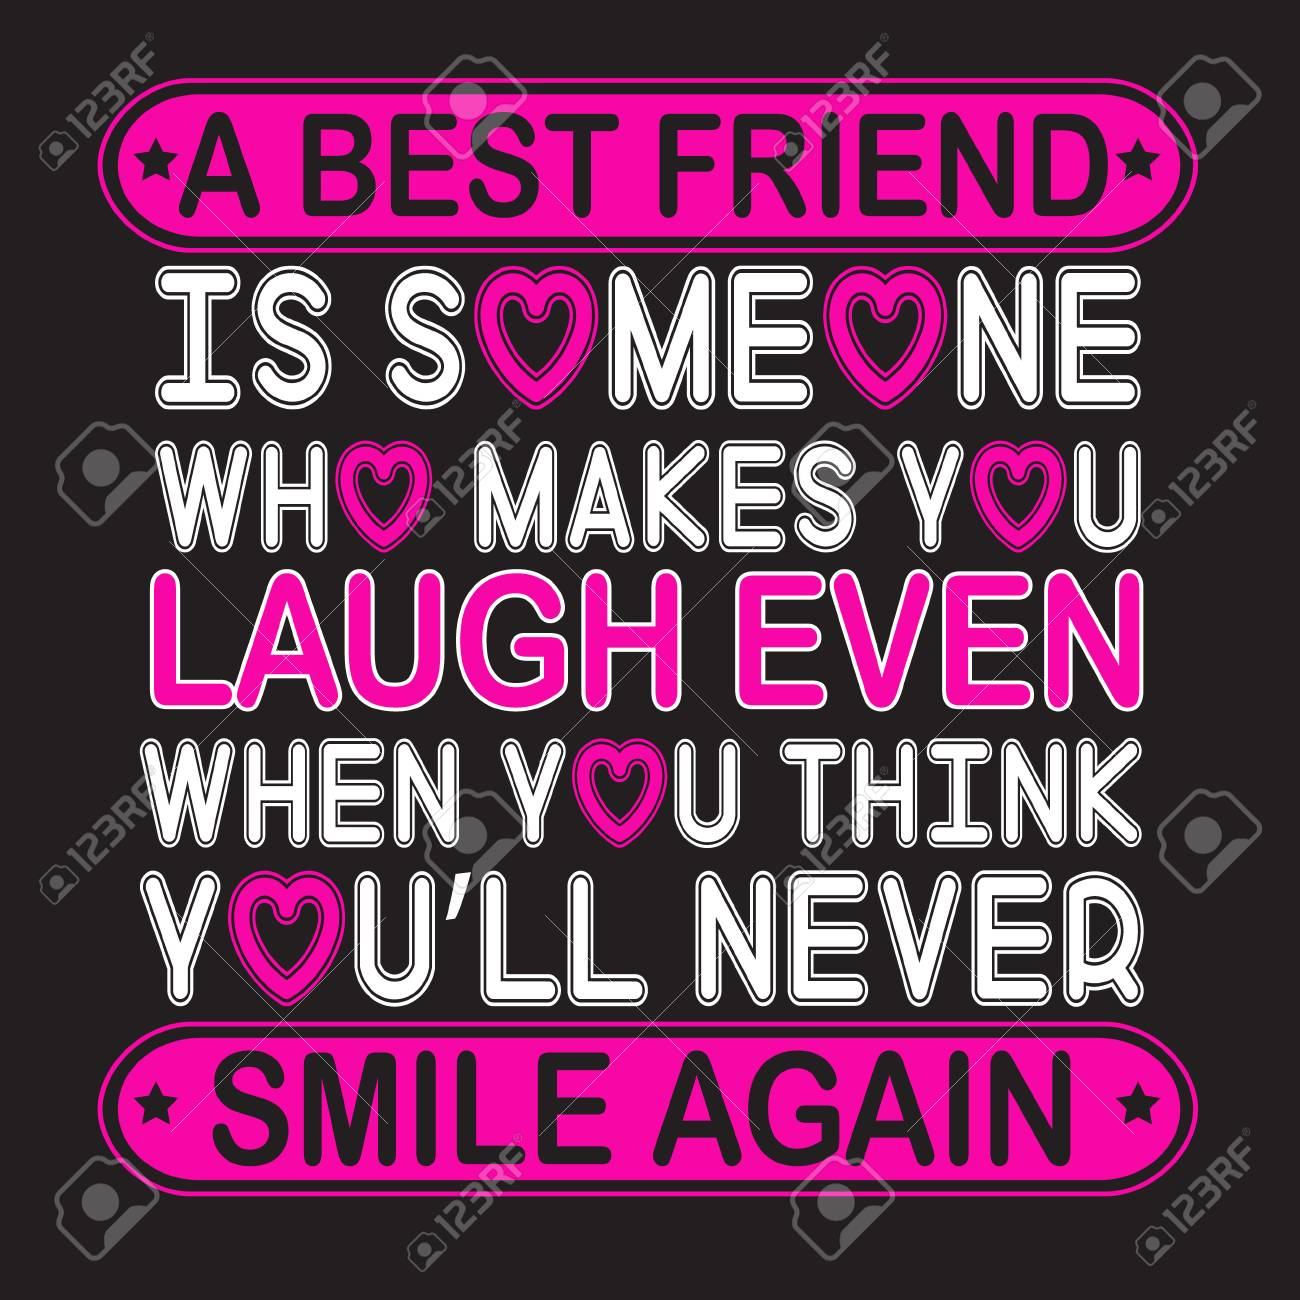 friendship quote and saying a best friend is someone who makes